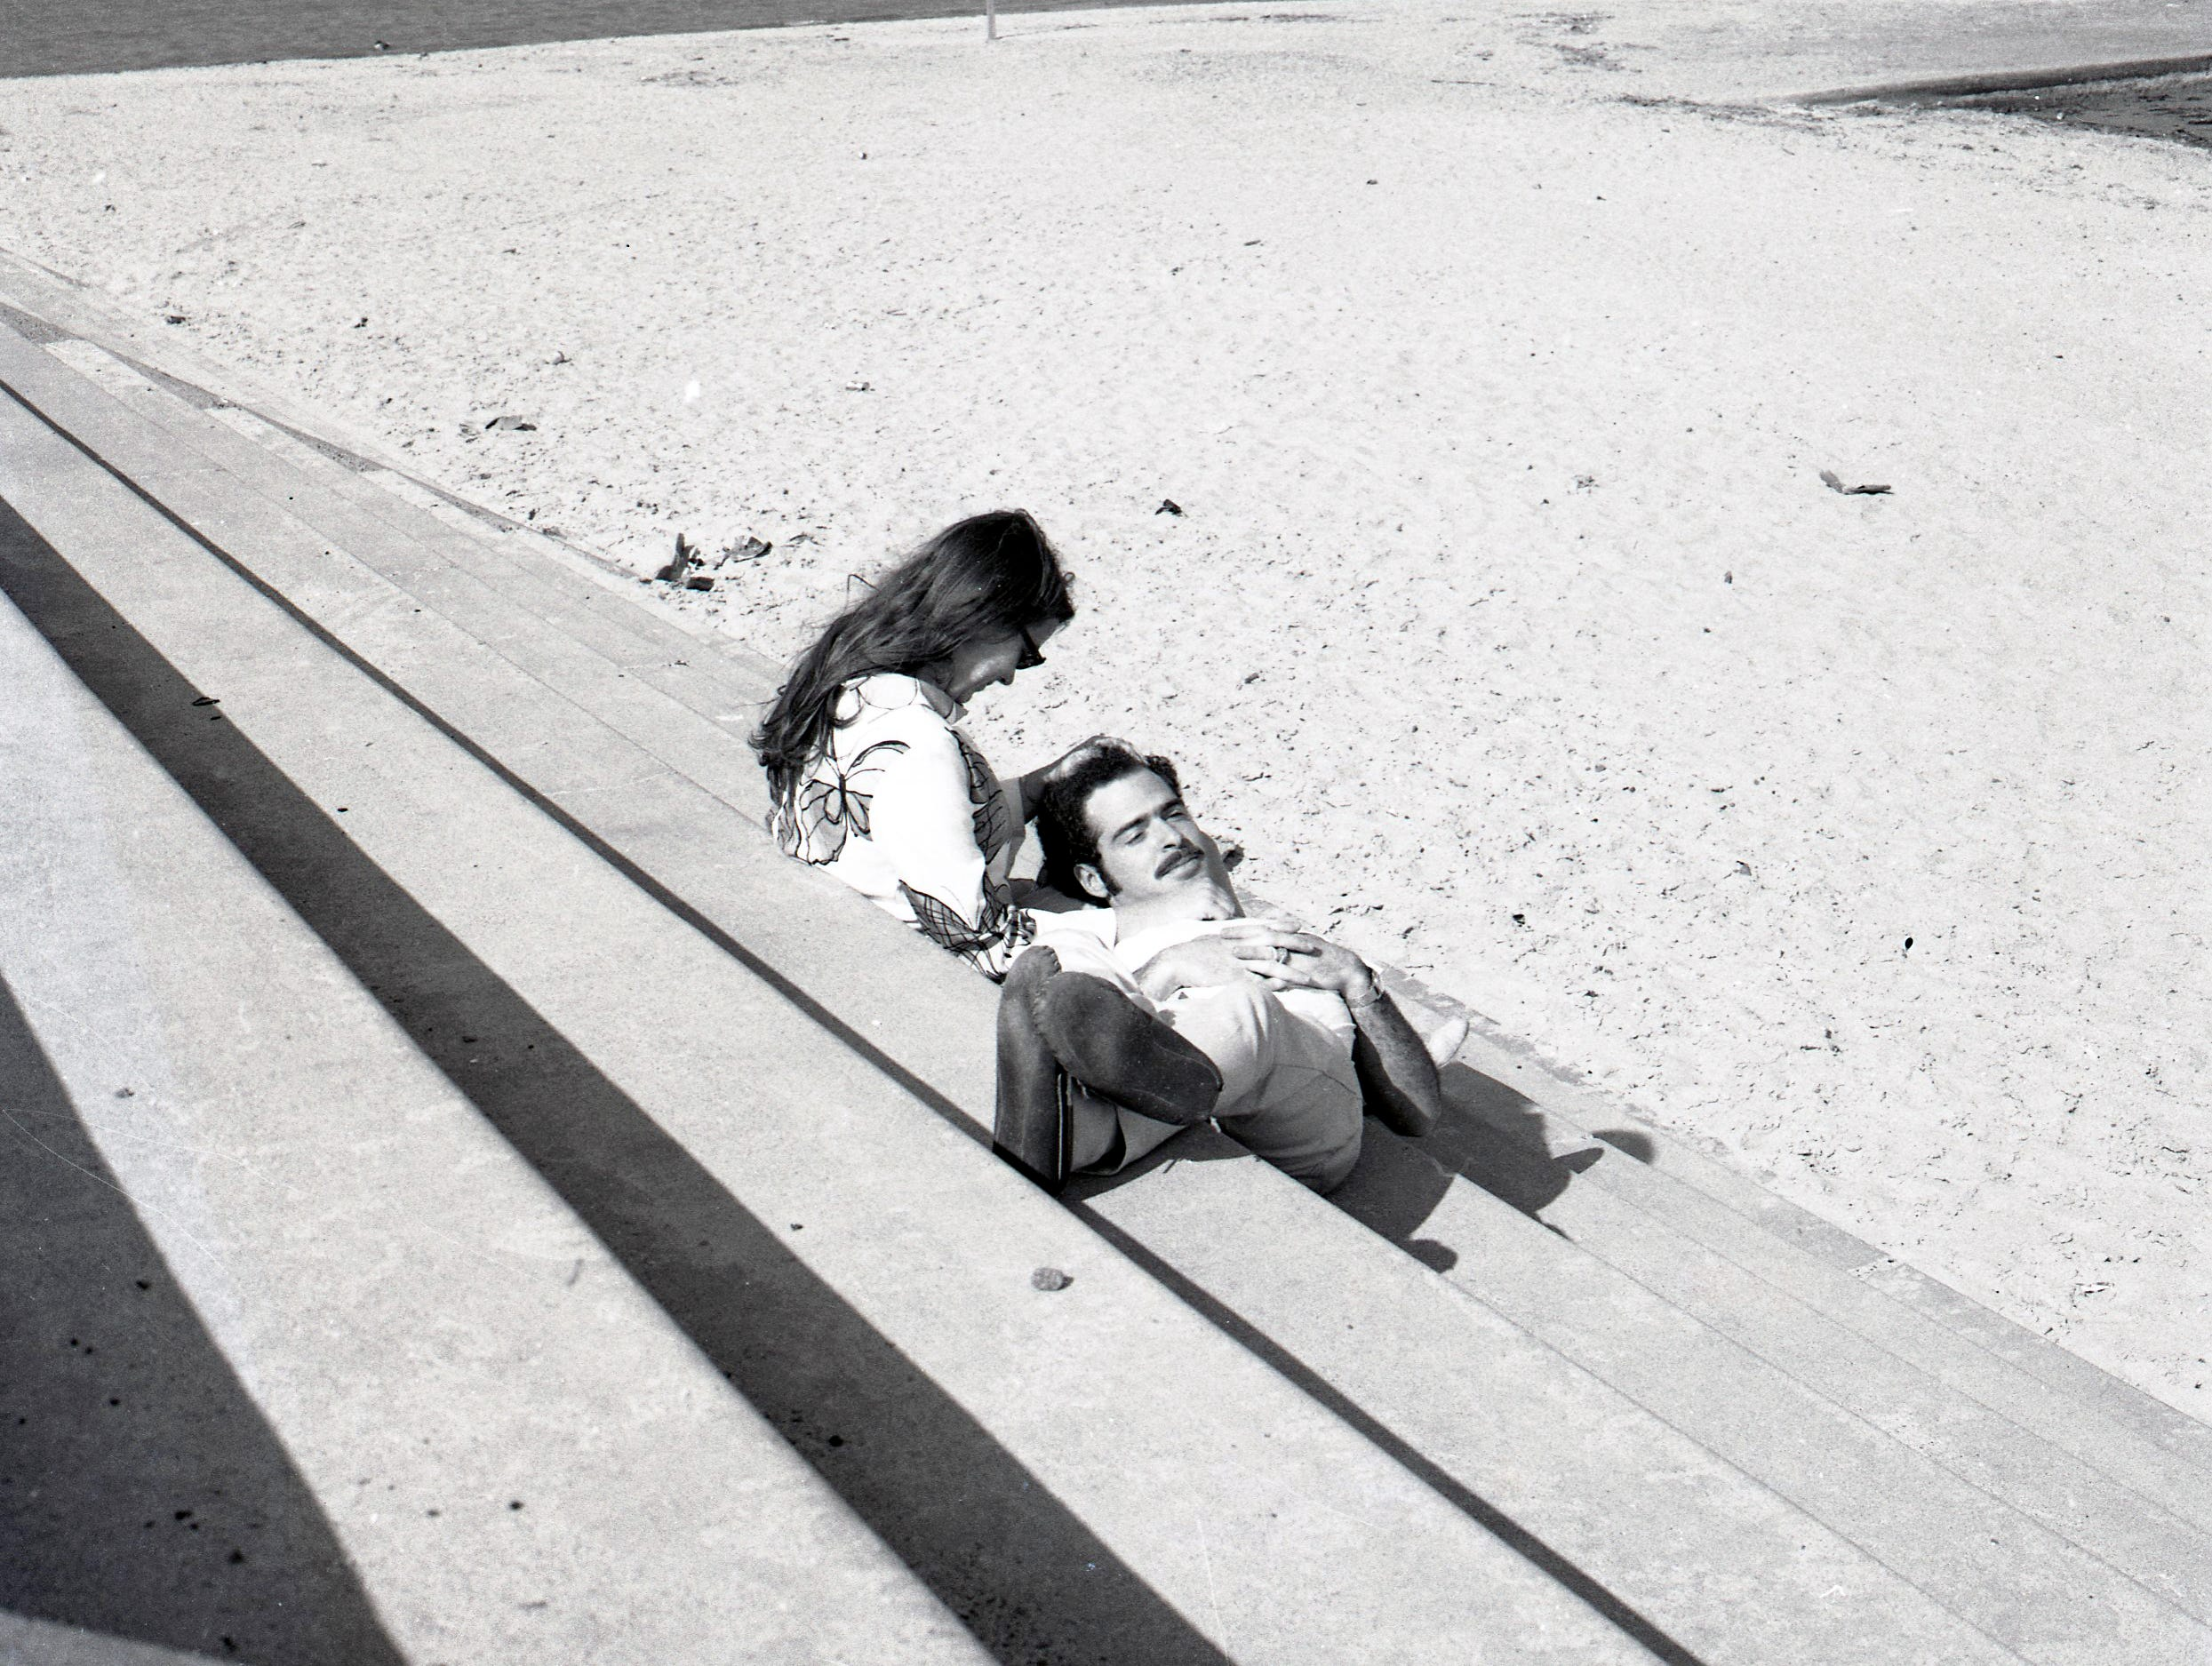 A canoodling couple on the seawall at McGee Beach in downtown Corpus Christi on March 30, 1969.